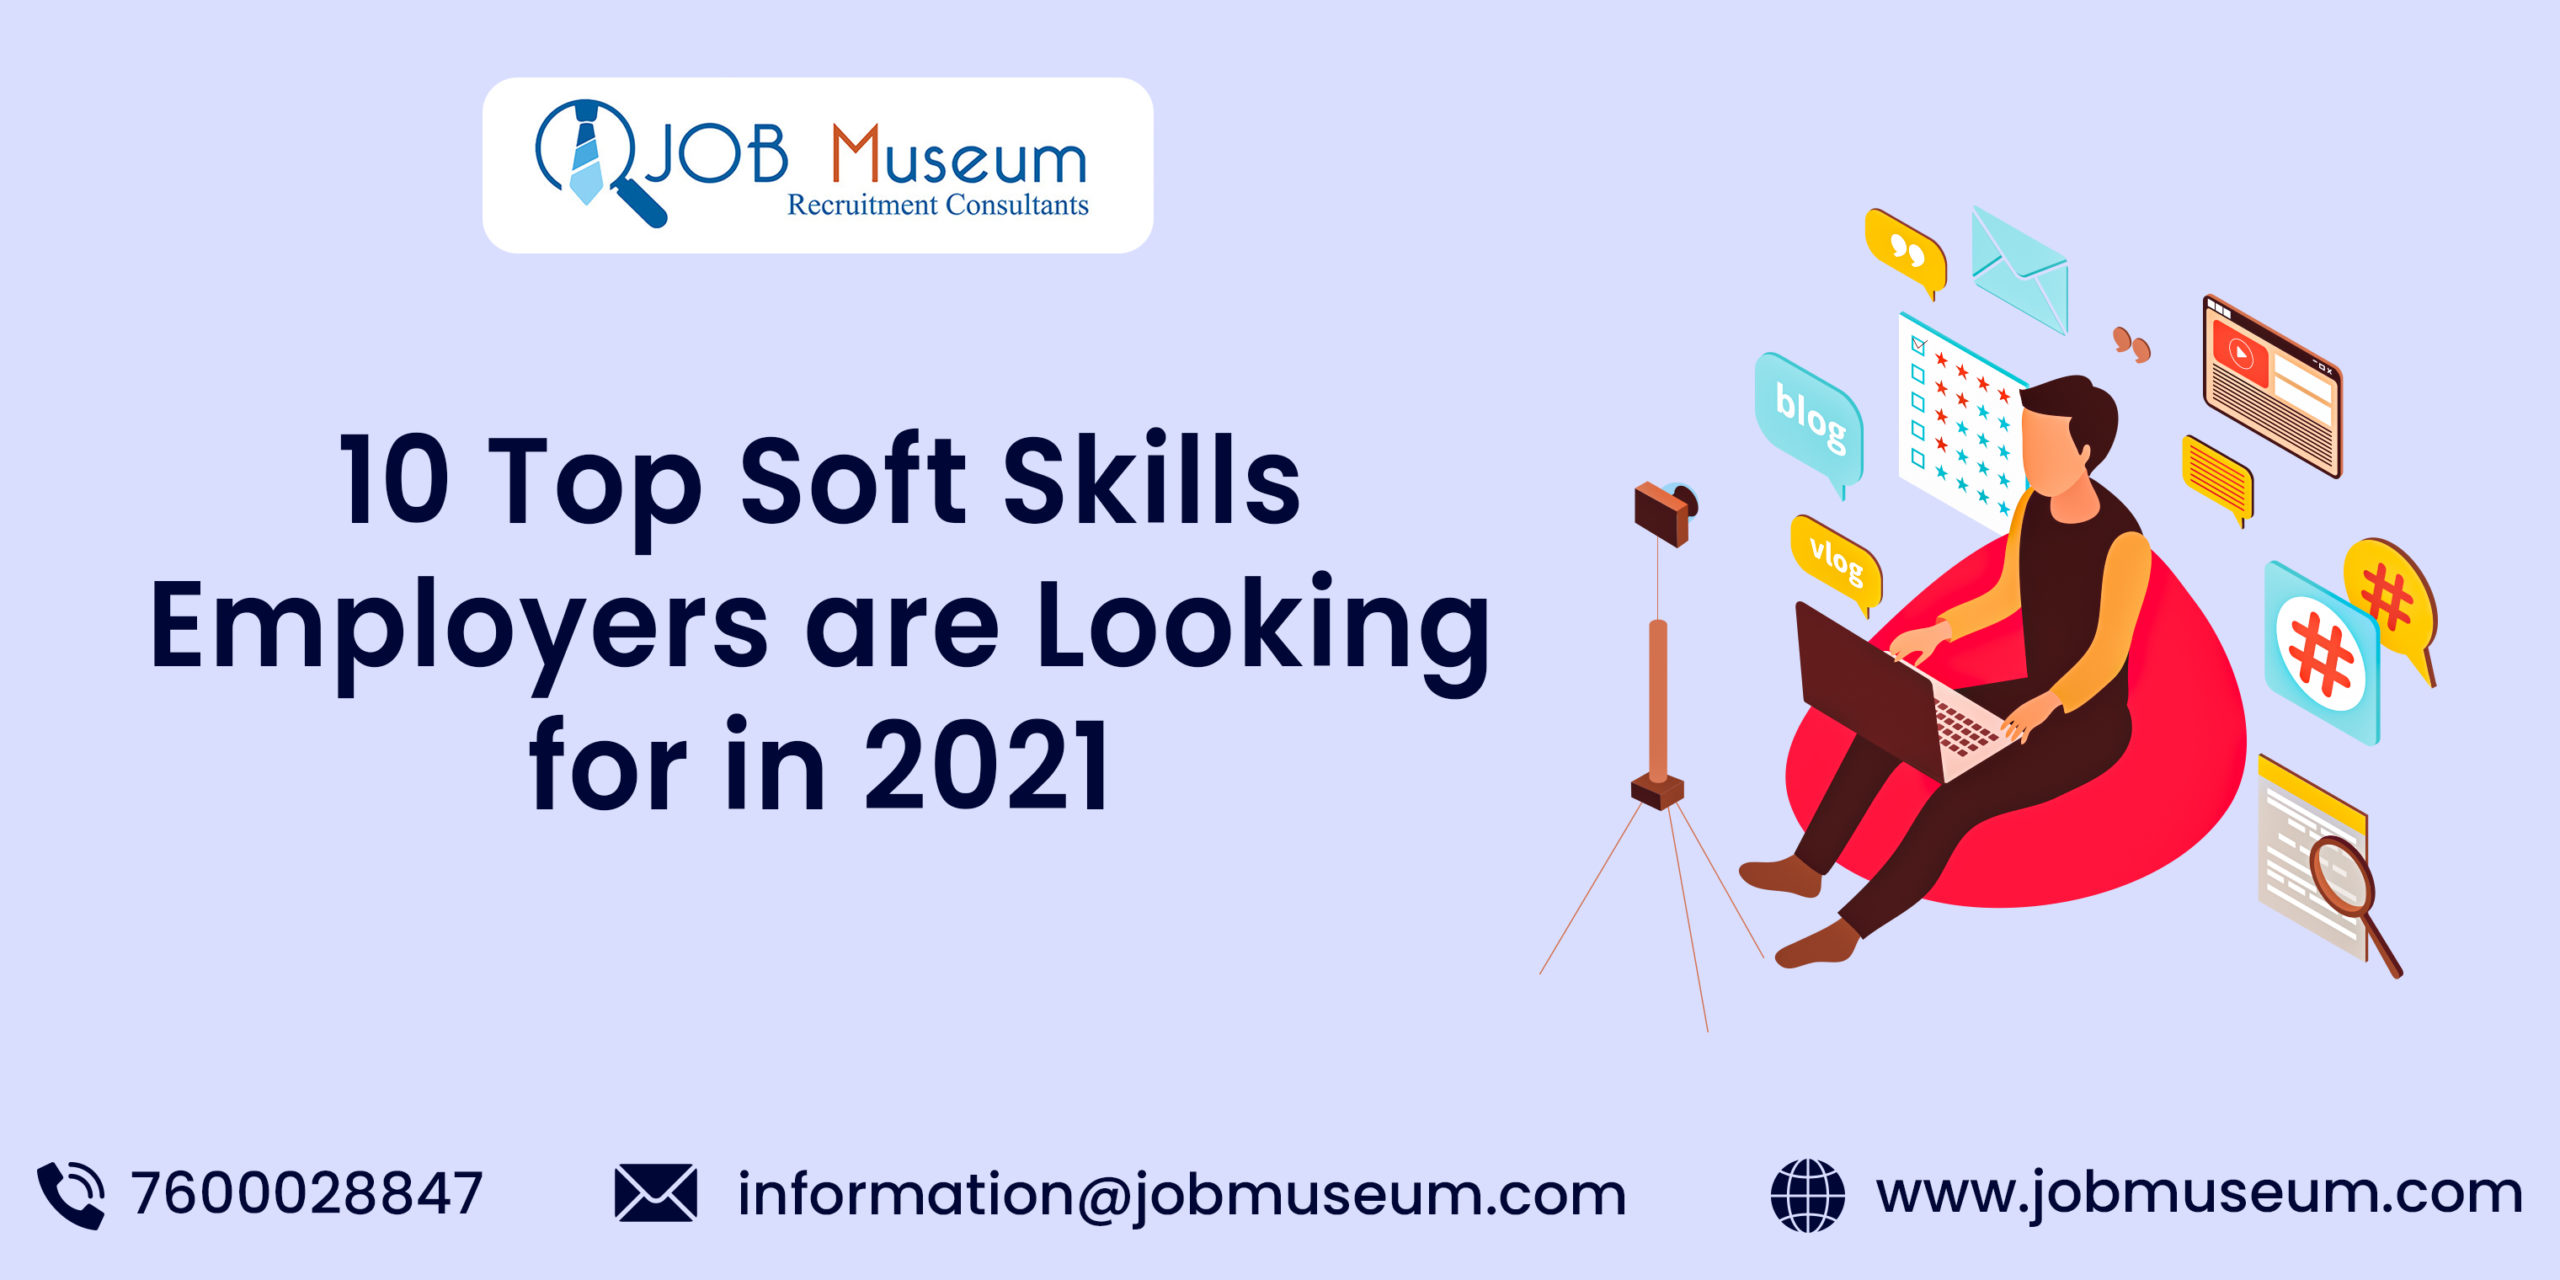 10 Top Soft Skills Employers are Looking for in 2021